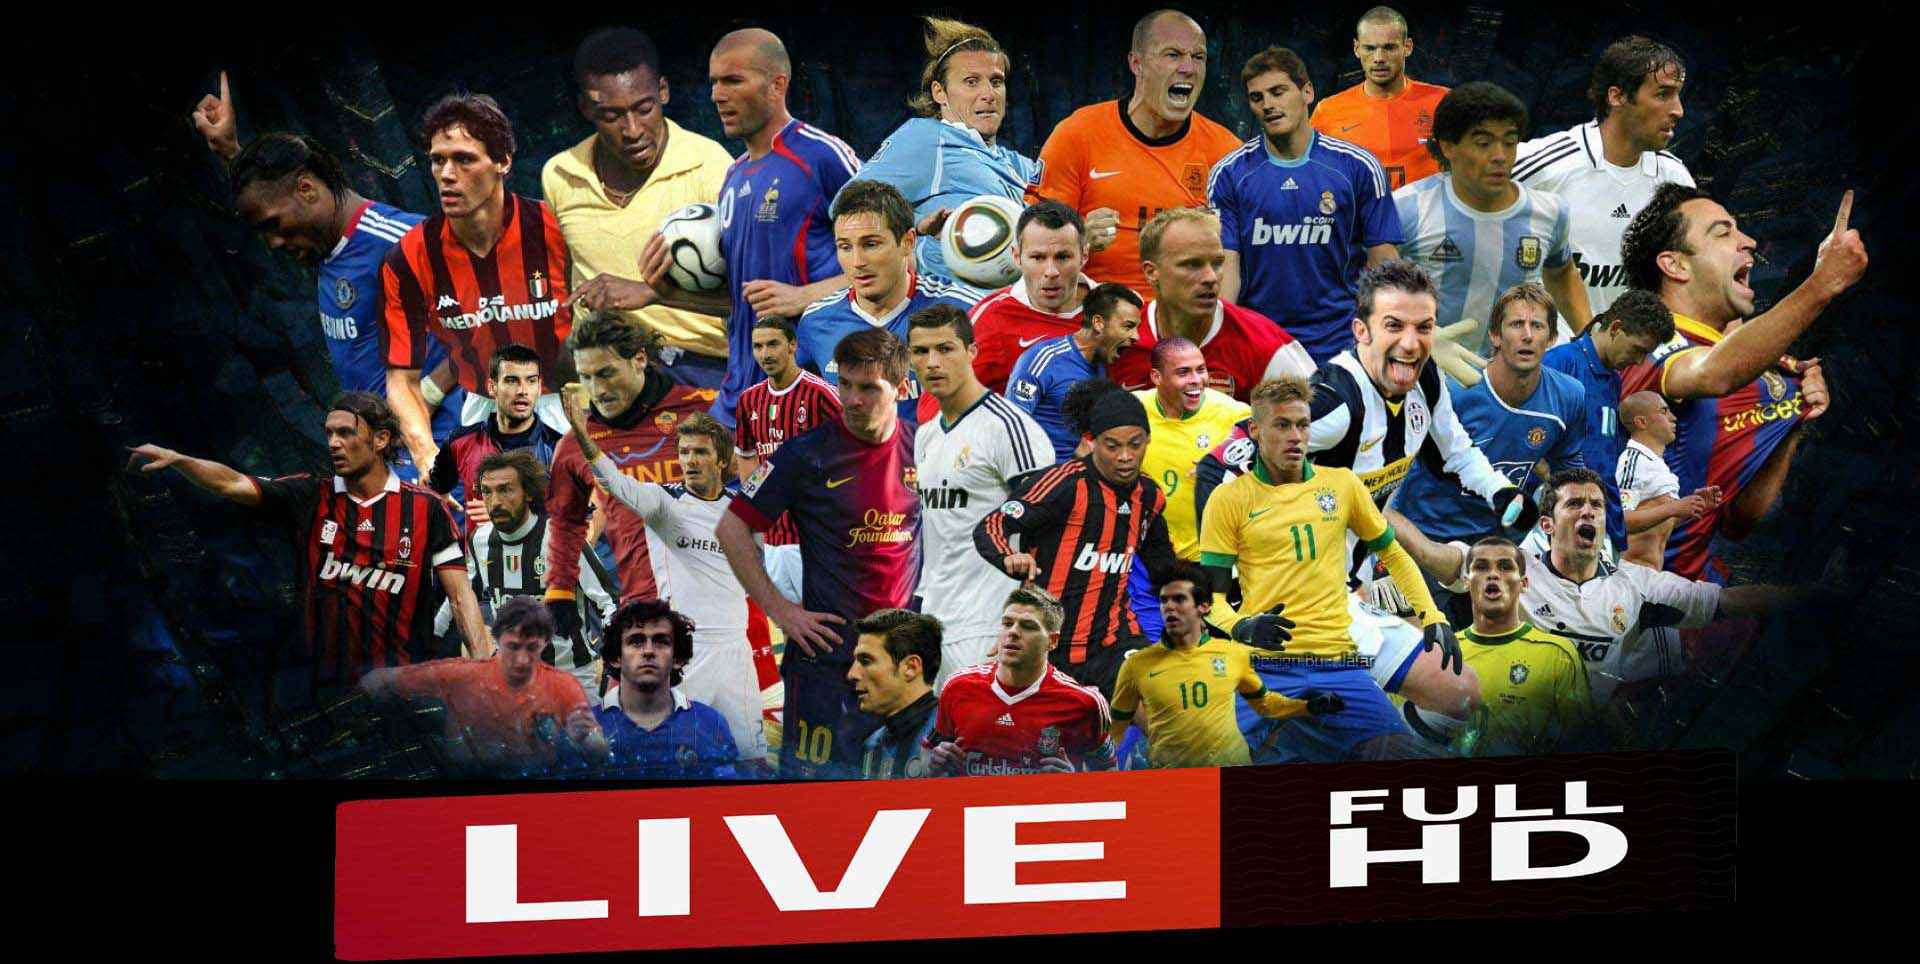 Watch Besiktas vs Dynamo Kyiv UEFA Live